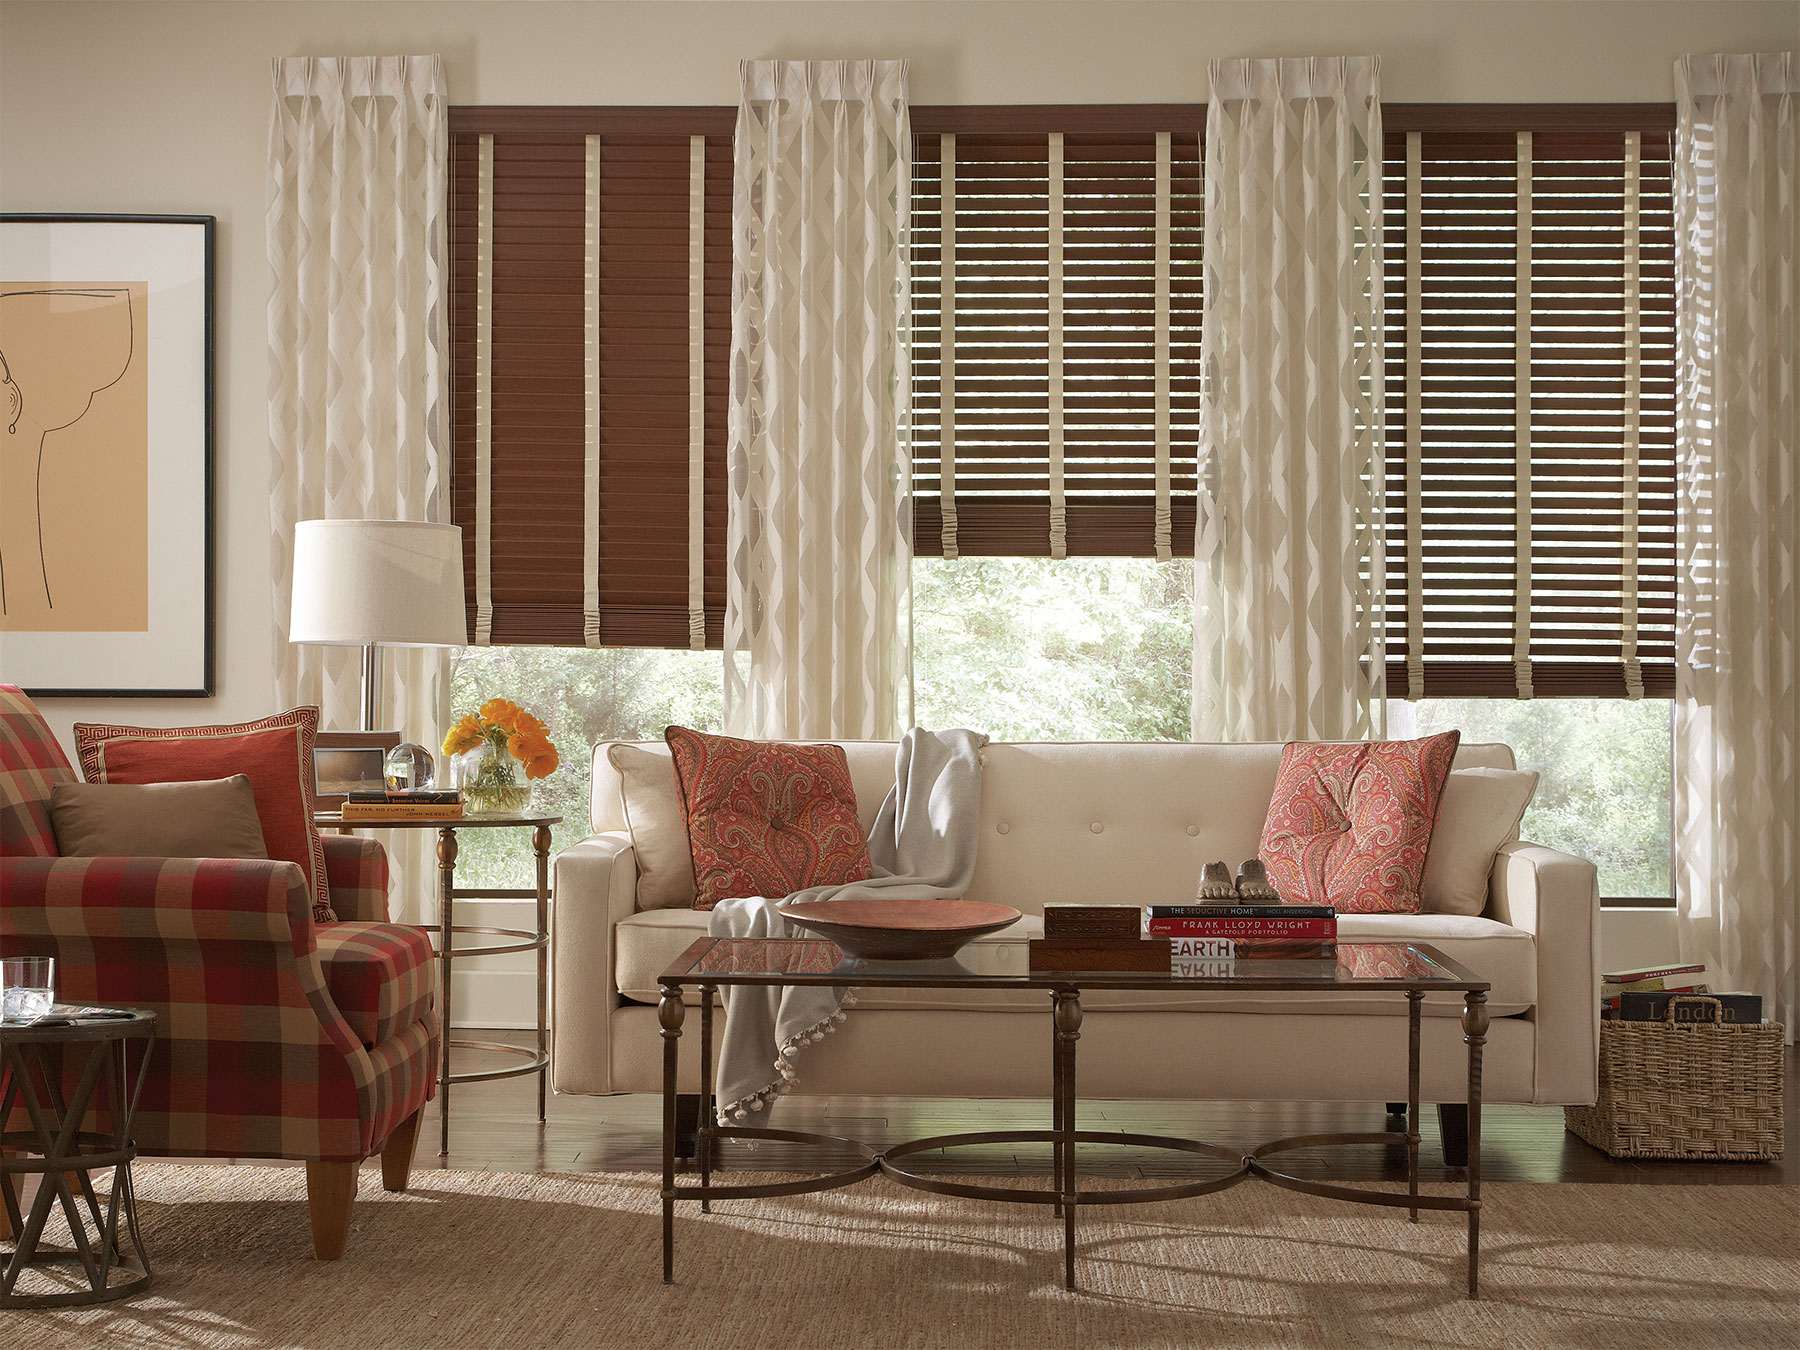 Woodblinds_Showcase_Fidelis